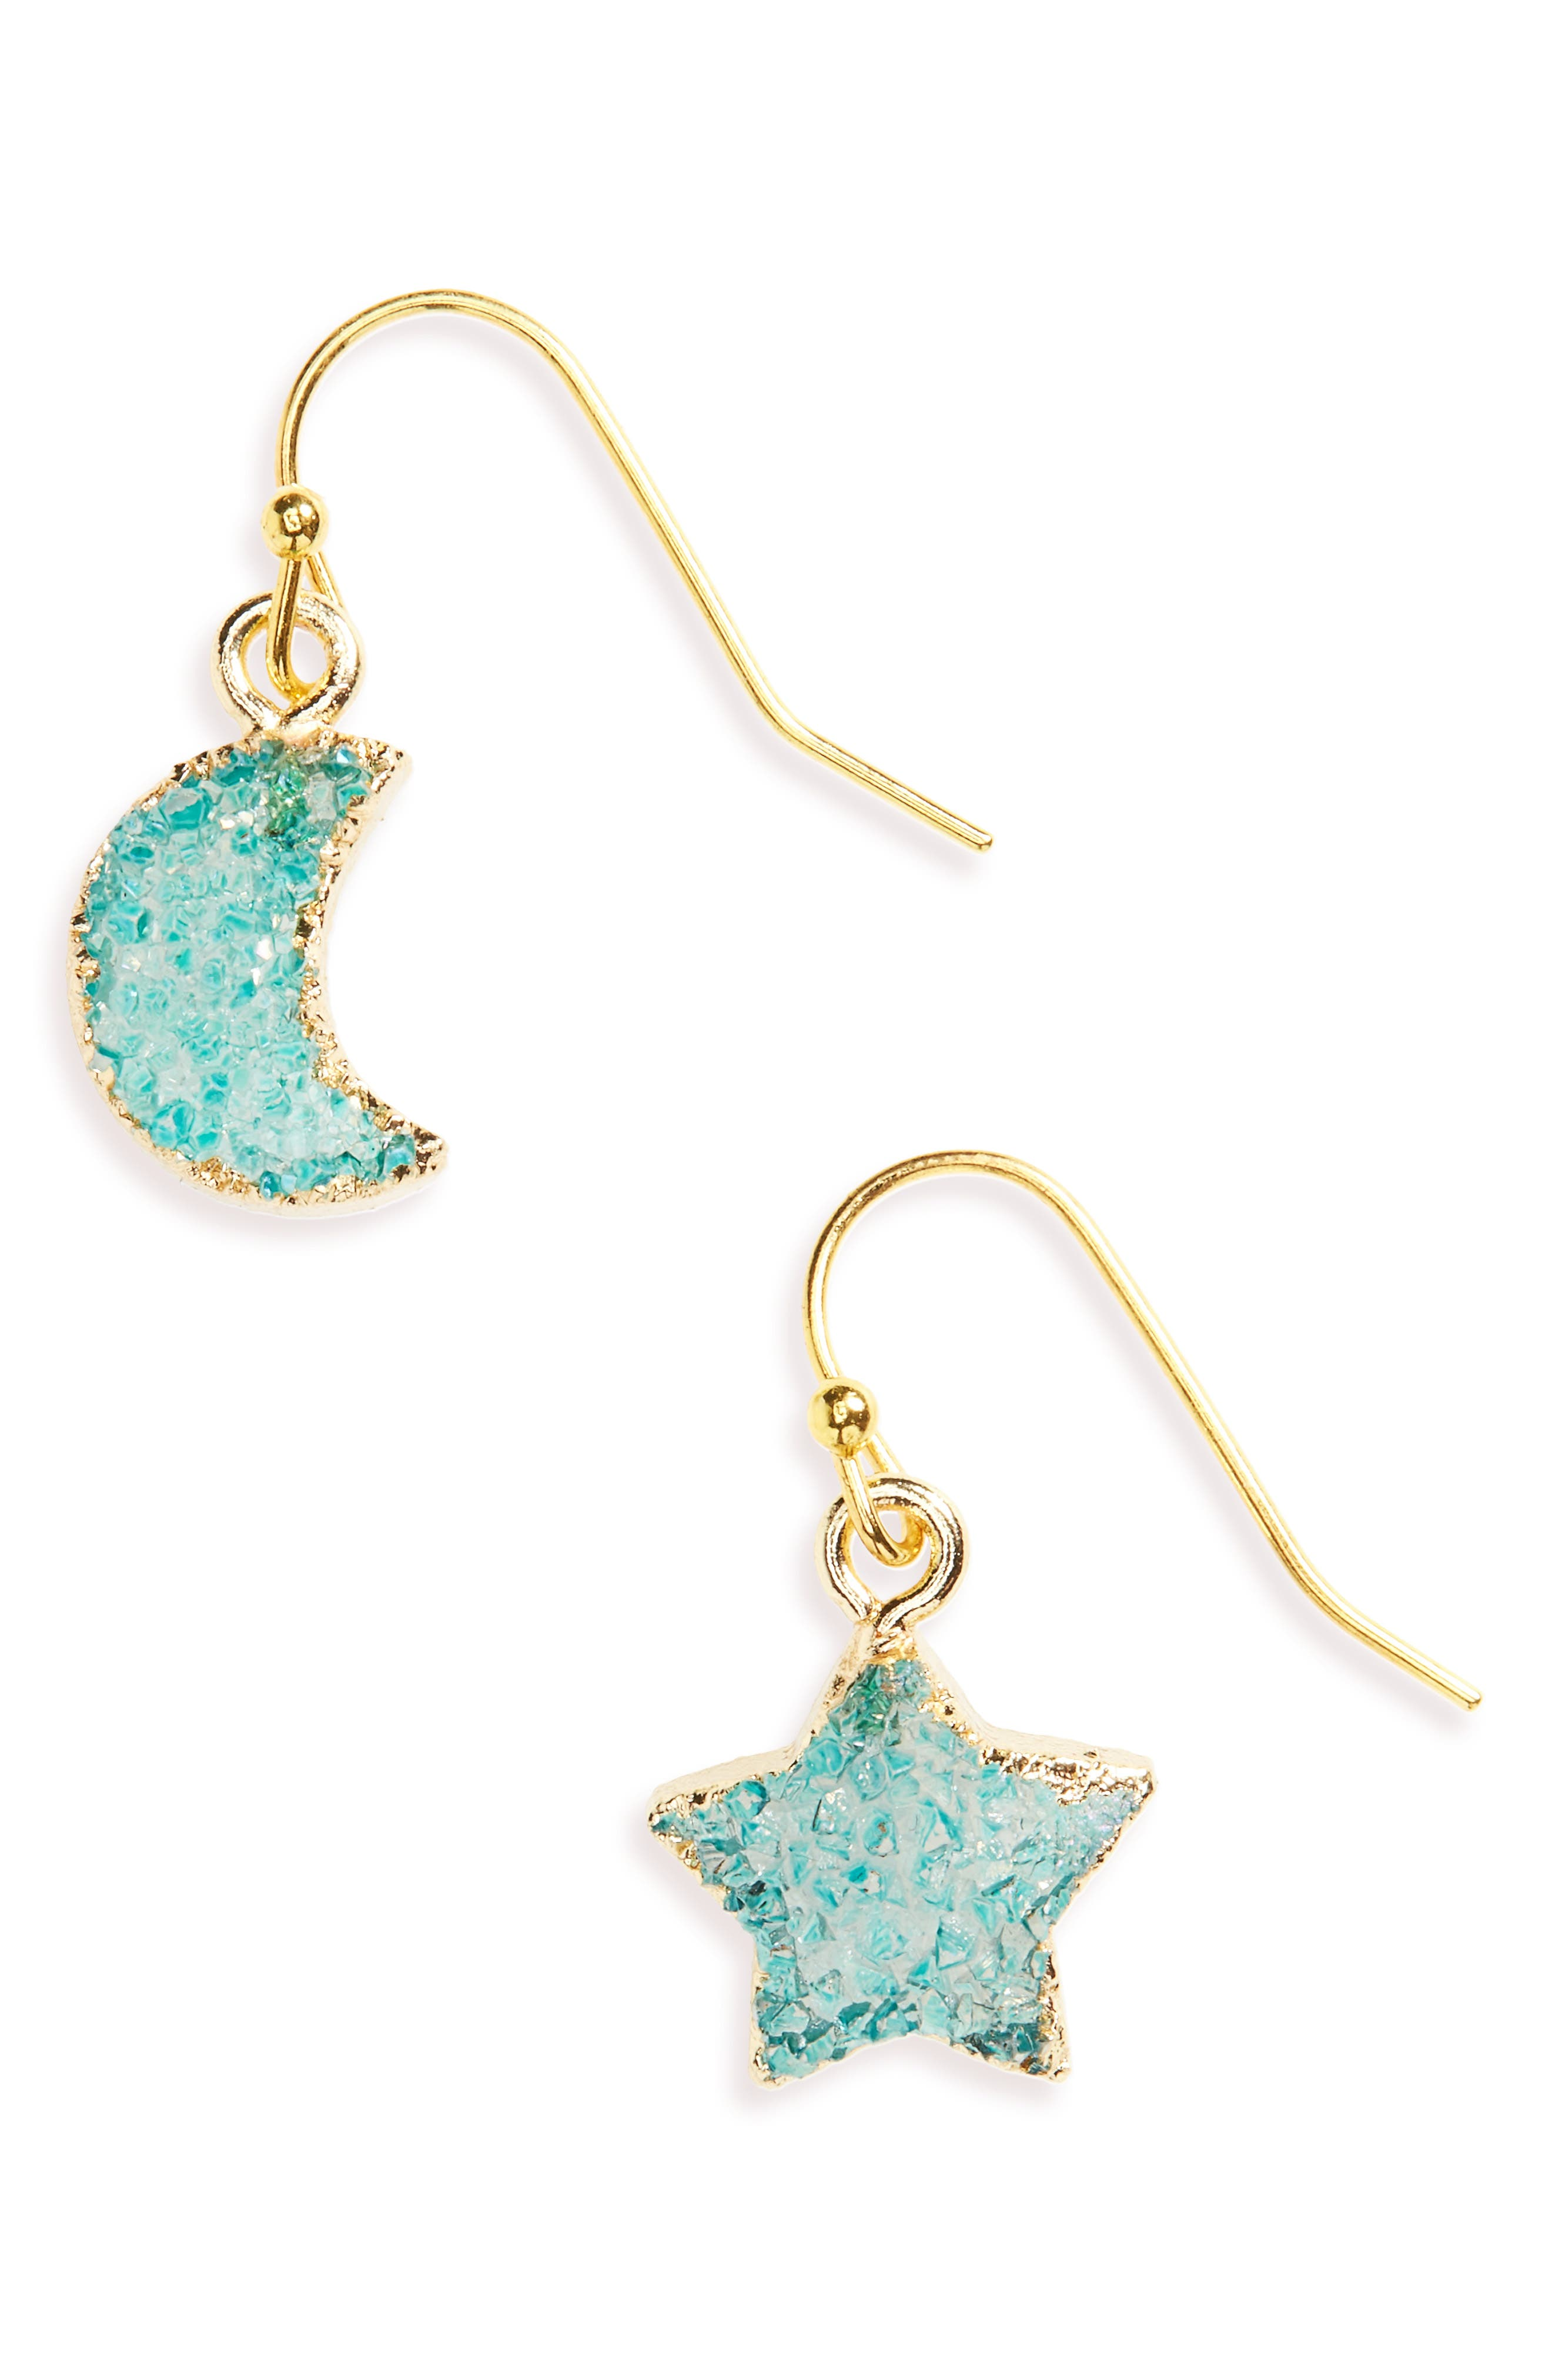 Moon & Star Drusy Stone Earrings,                             Main thumbnail 1, color,                             410